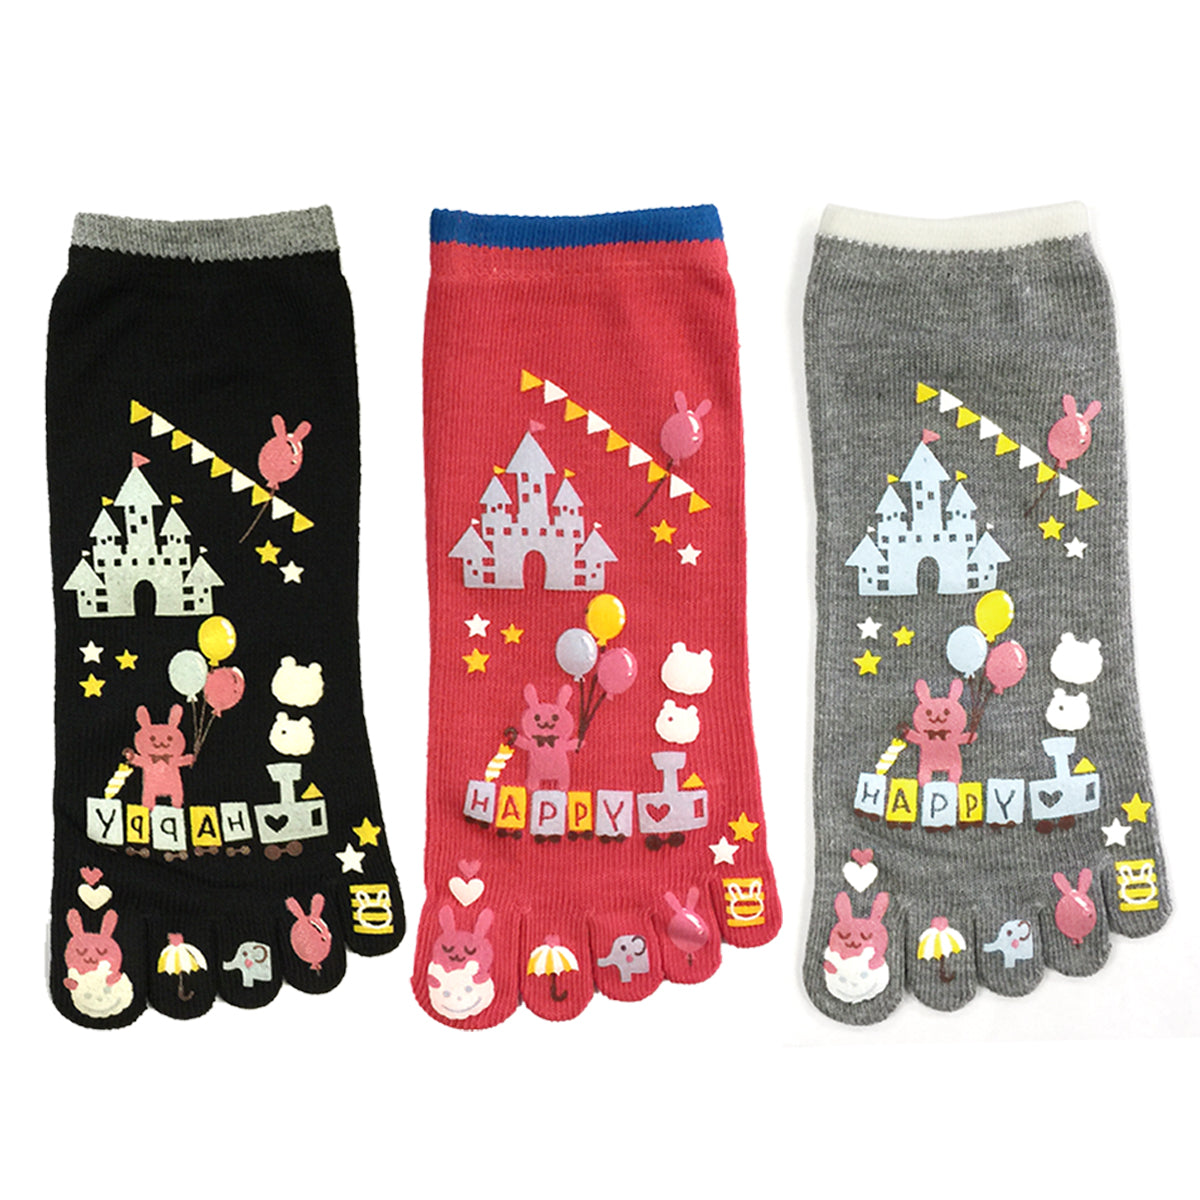 Wrapables Amusement Park Cartoon Socks Five Toe Socks (Set of 3)